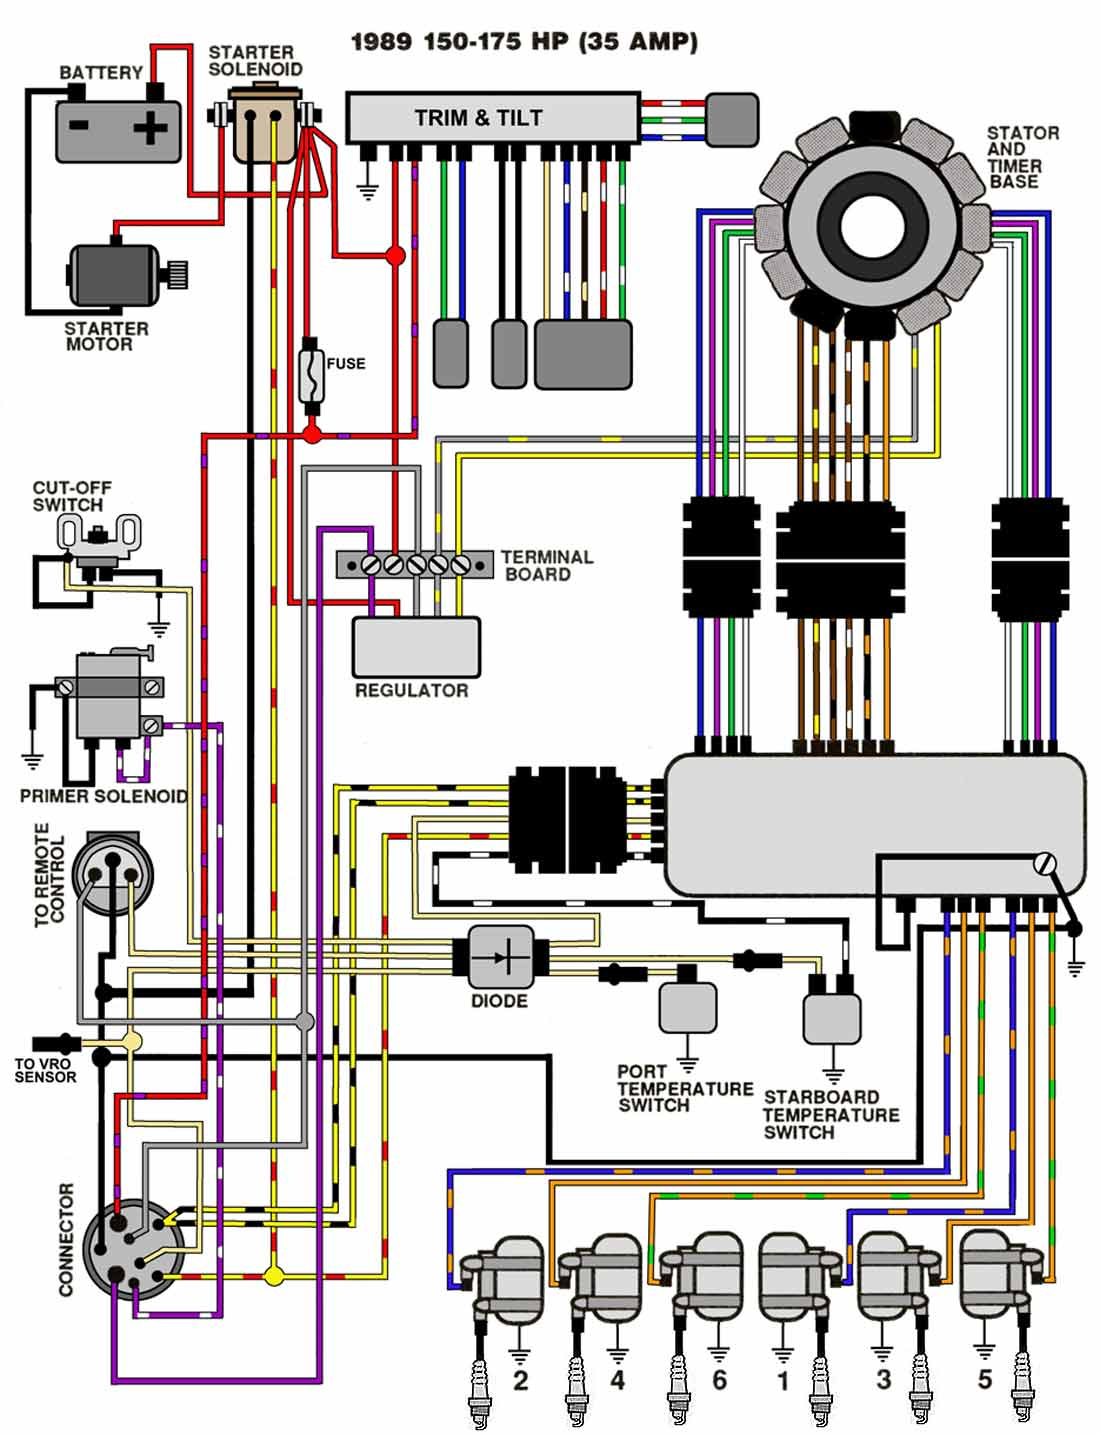 2010 06 02_024053_1989_89_150_175_35A i need a wiring diagram for a 2000 ocean pro 150 hp starter hp wiring diagram for pavilion at aneh.co